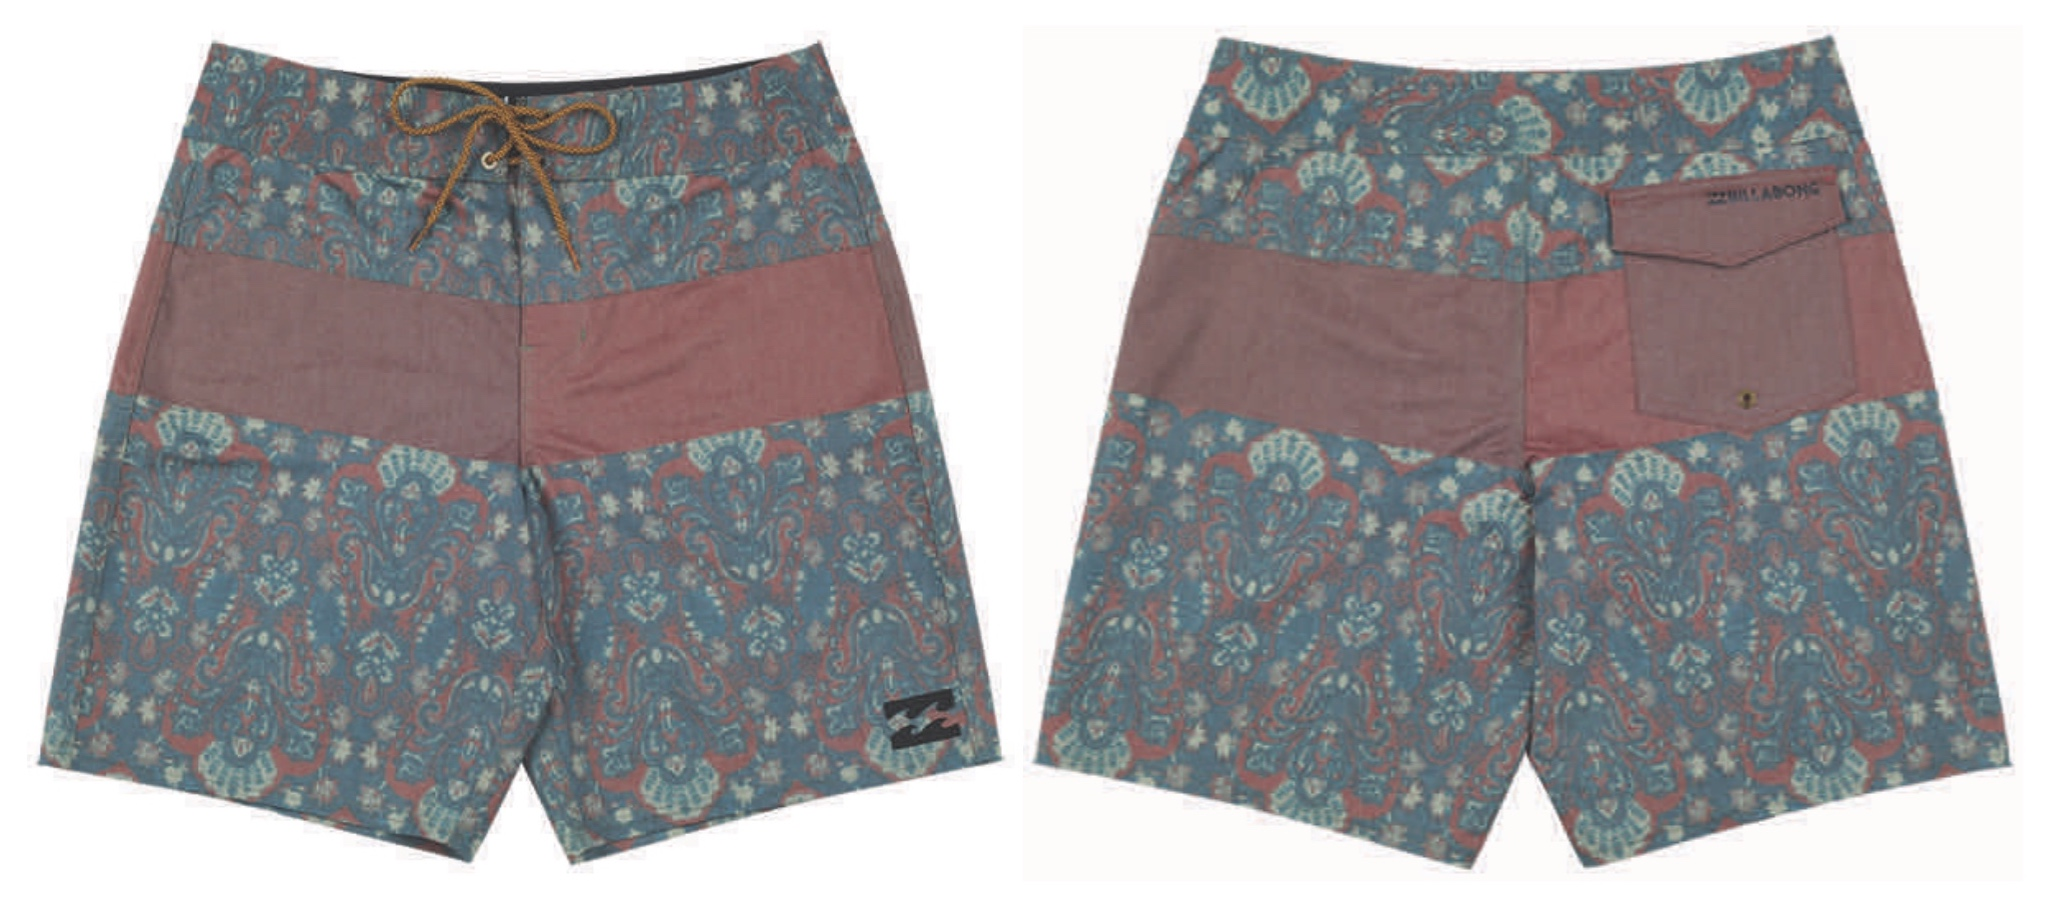 Tribong X Ornate 19 Boardshorts